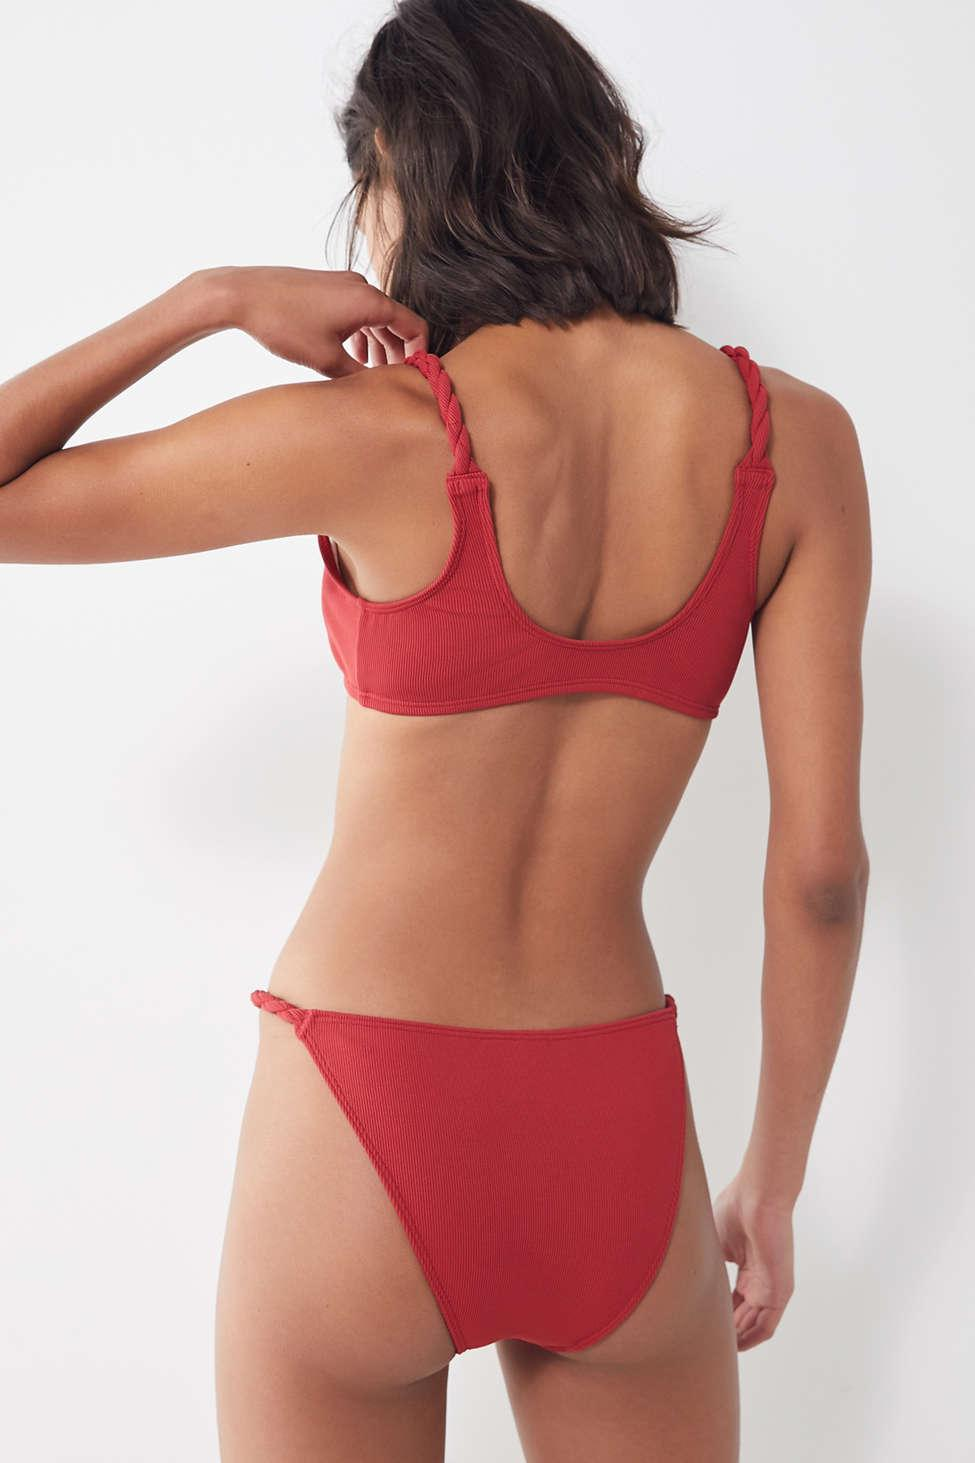 e0486ad0a8eef Out From Under - Red Wynona Ribbed Knot-front Bikini Top - Lyst. View  fullscreen